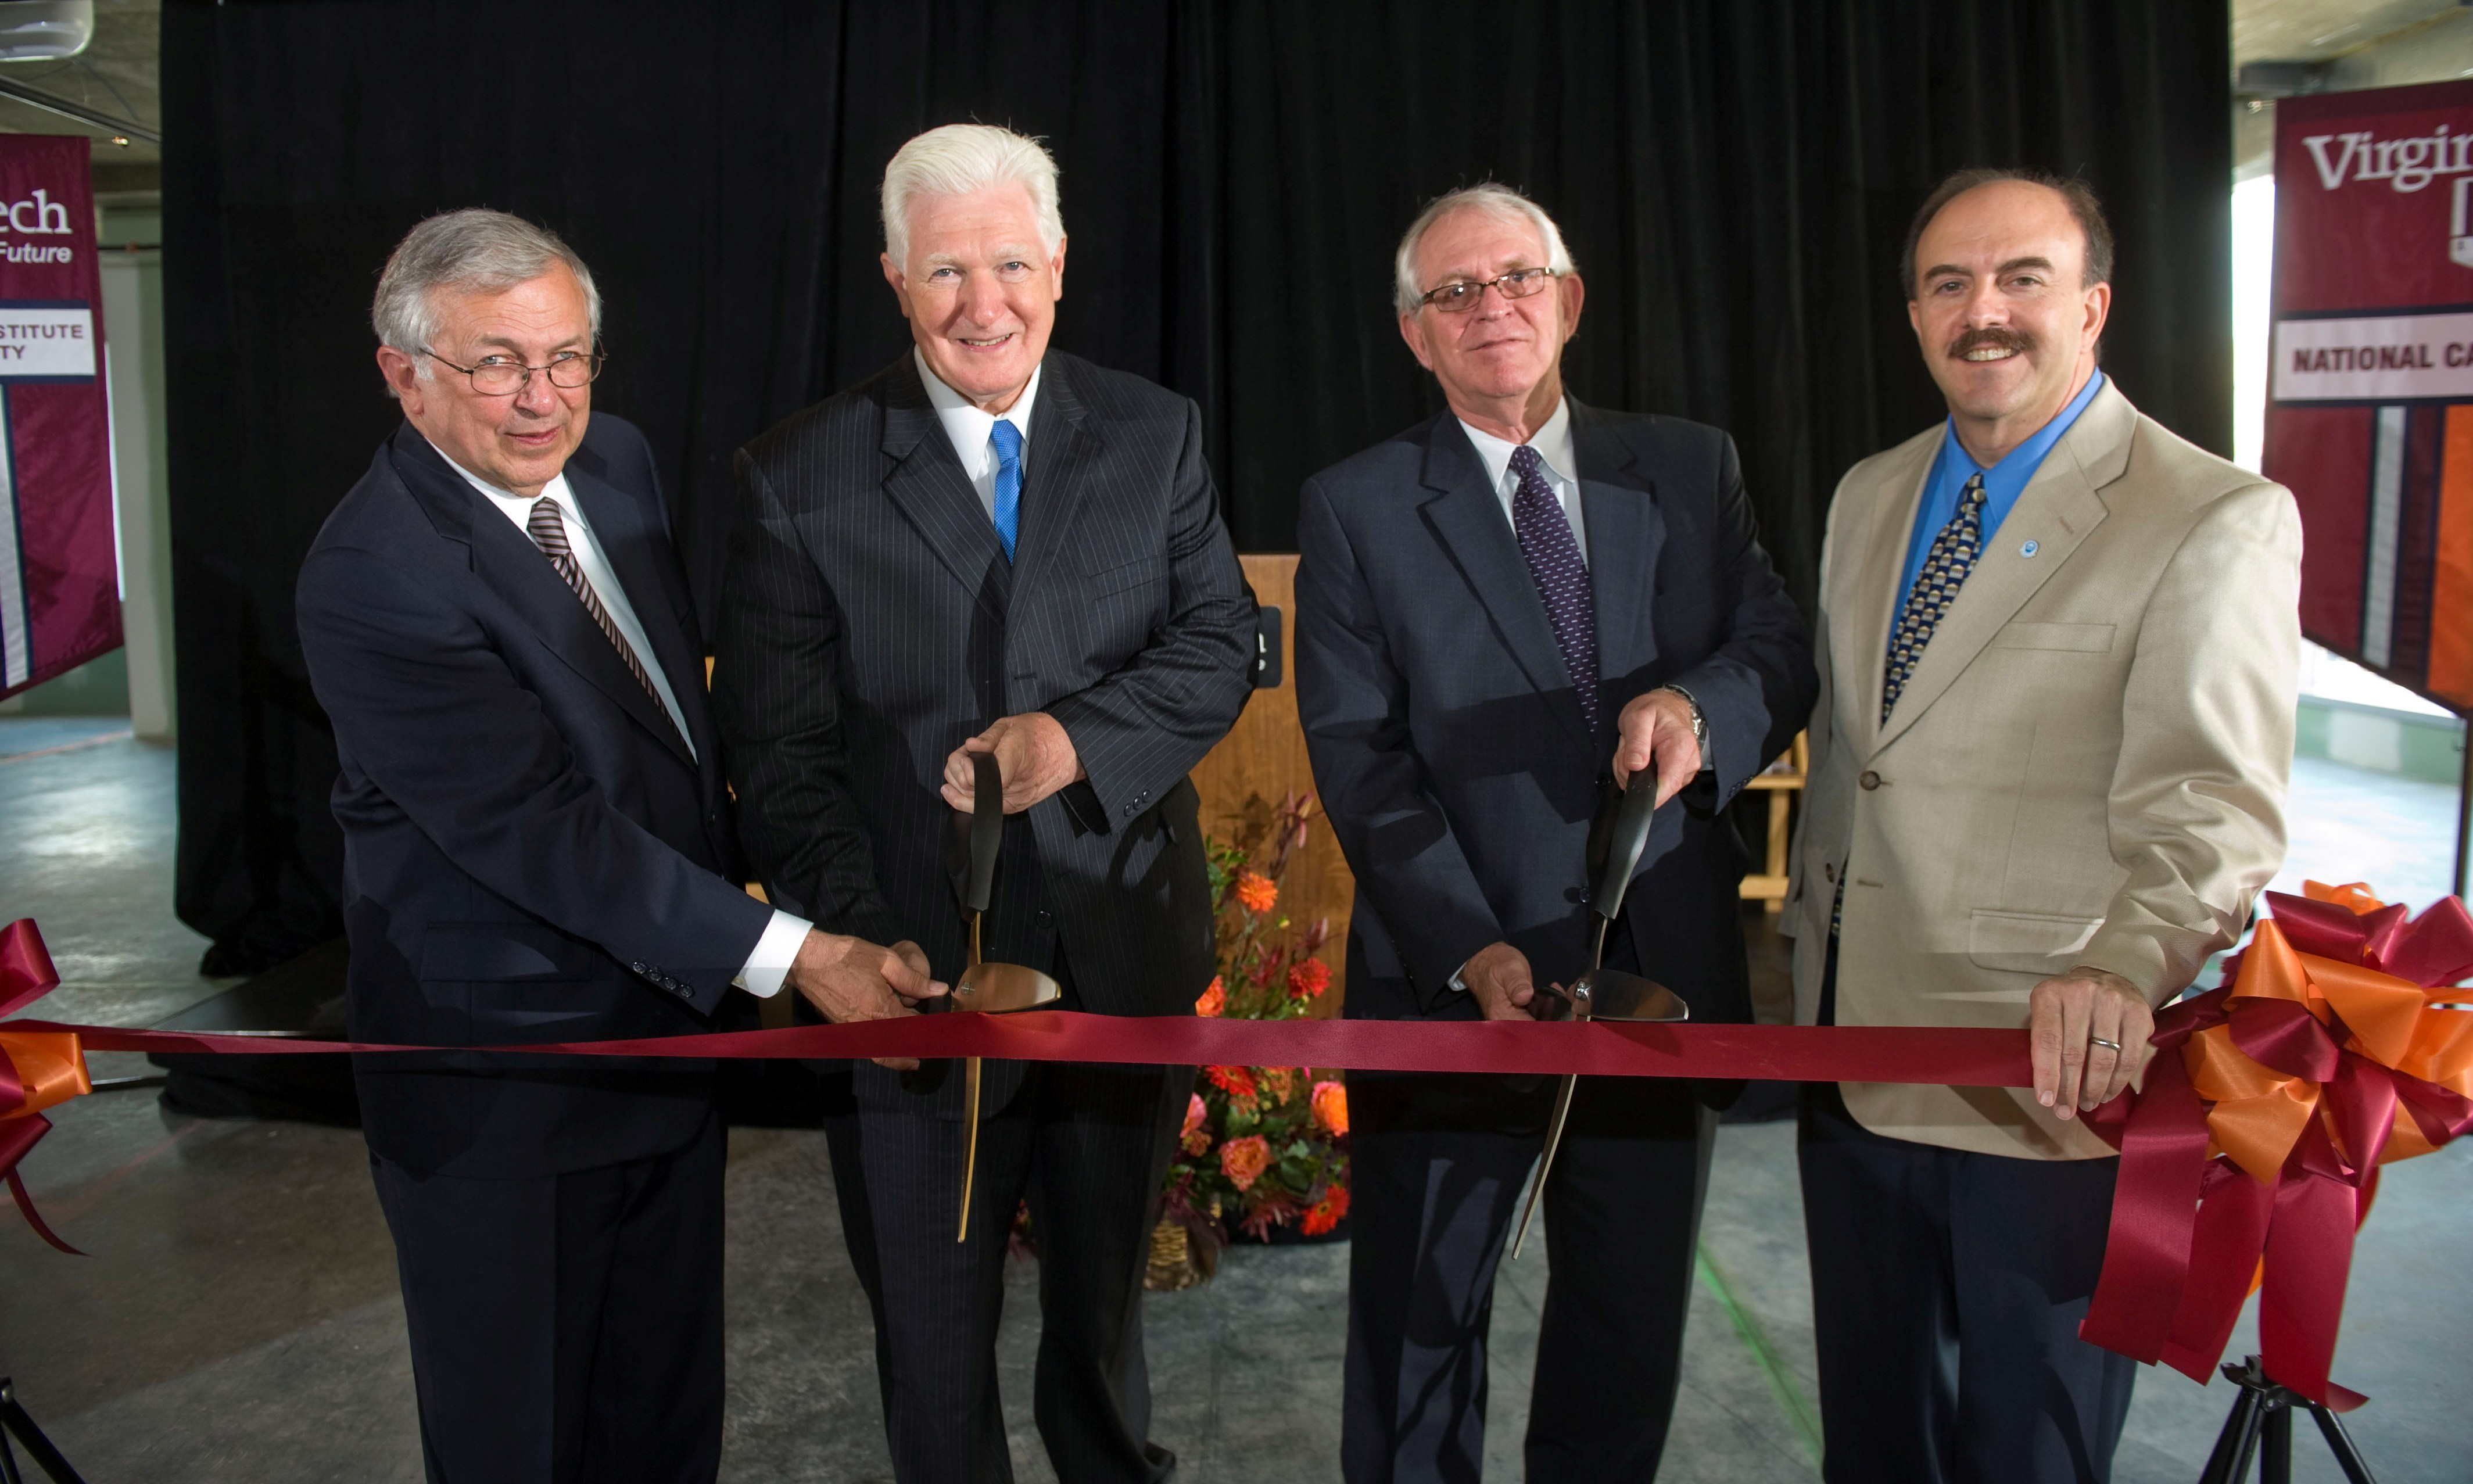 Steger, Moran, Bohland, and Zimmerman cut the ribbon